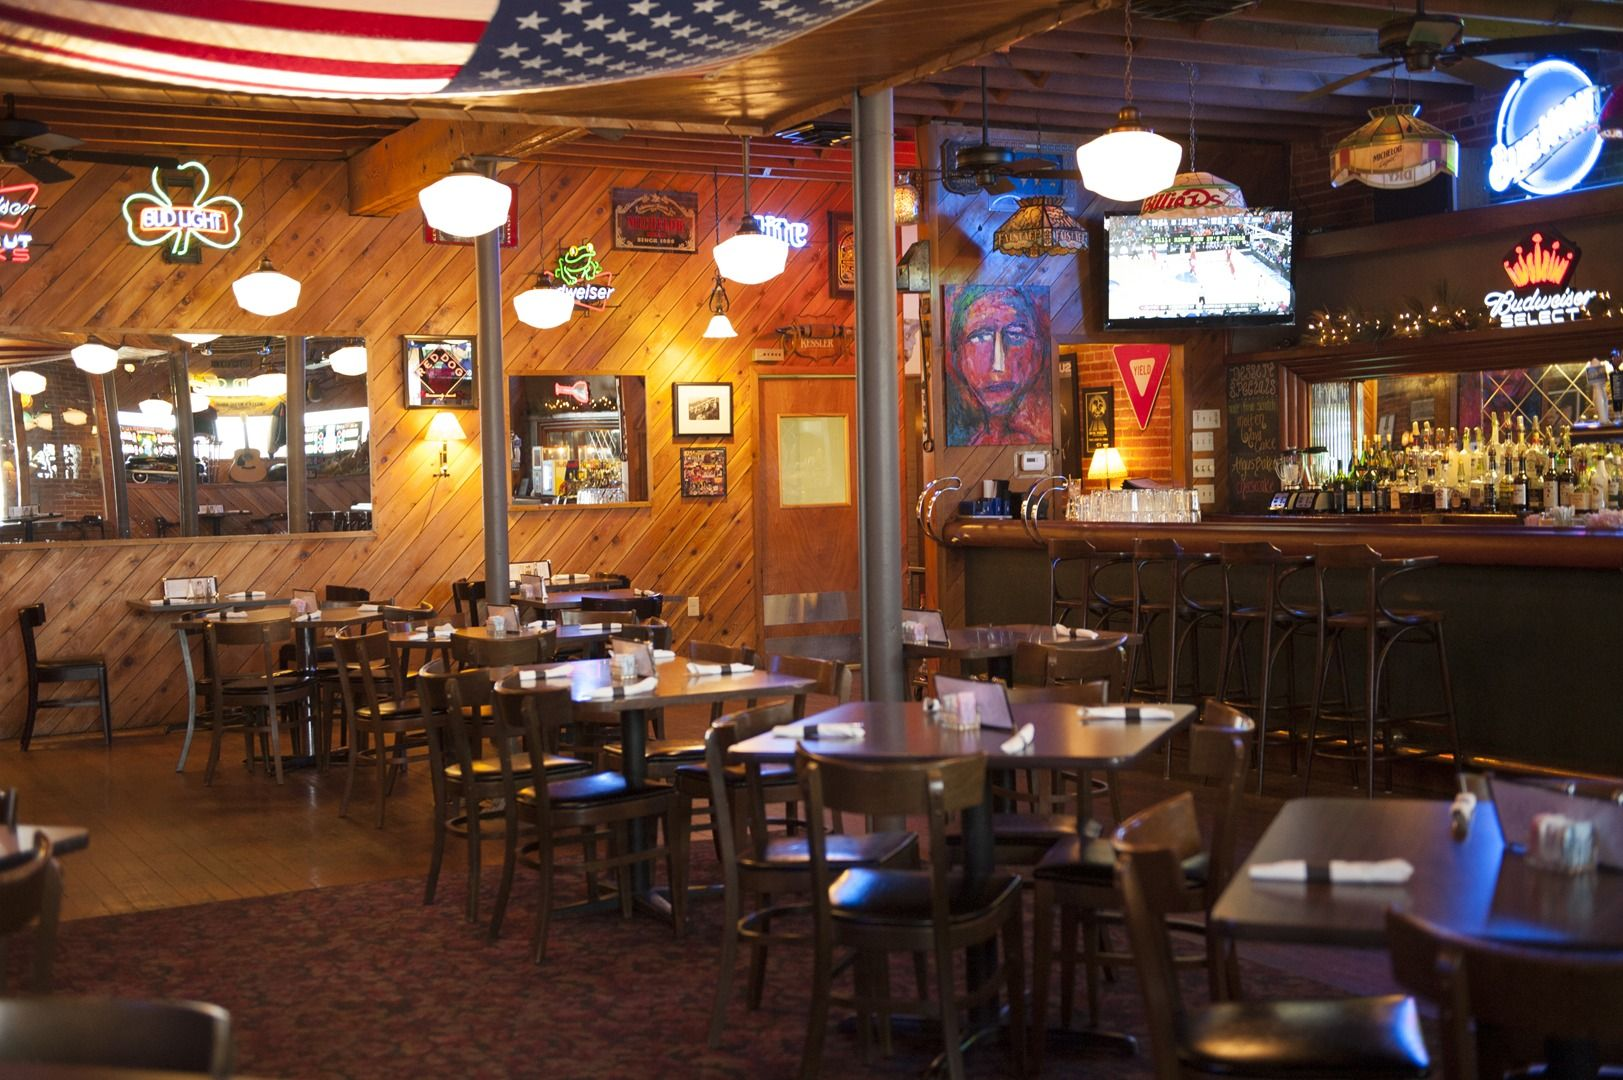 Angus Bailey S Restaurant Bar In Carlinville Il